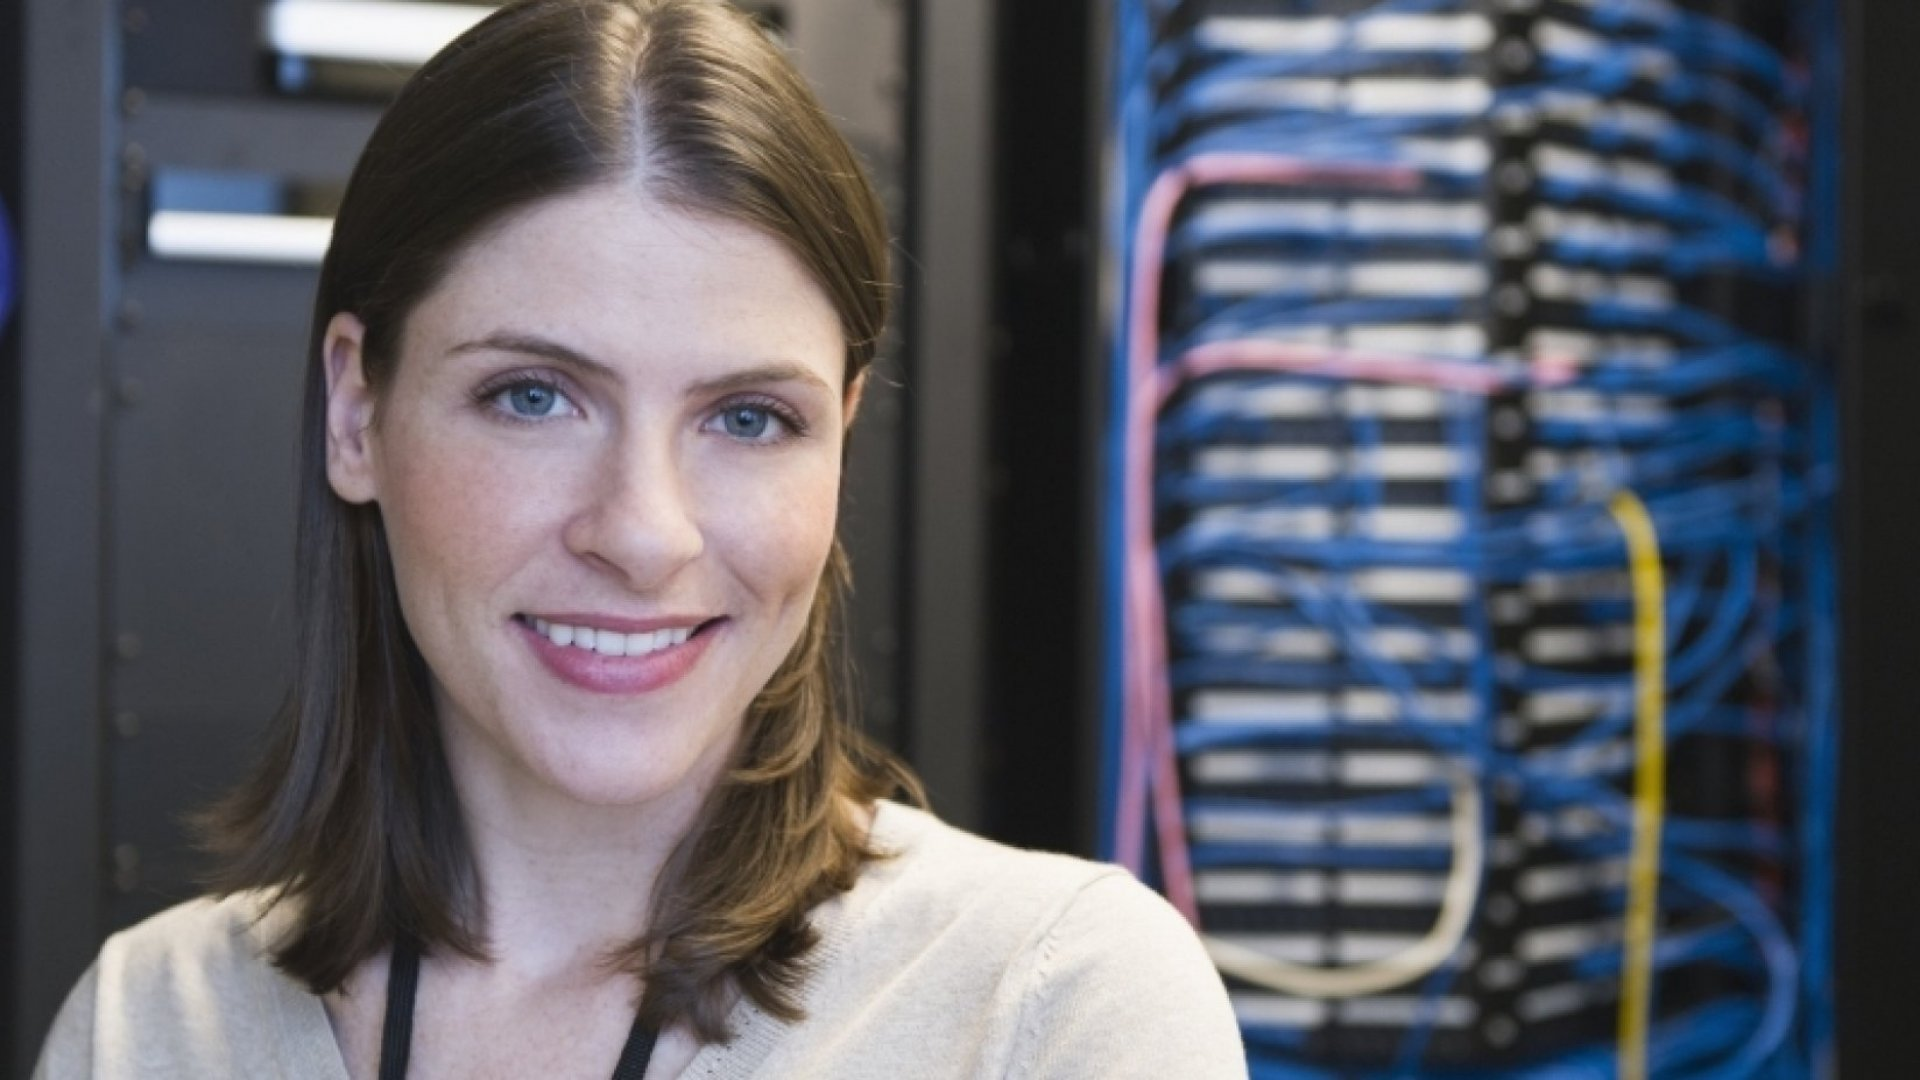 The Top 13 Companies for Female Technologists